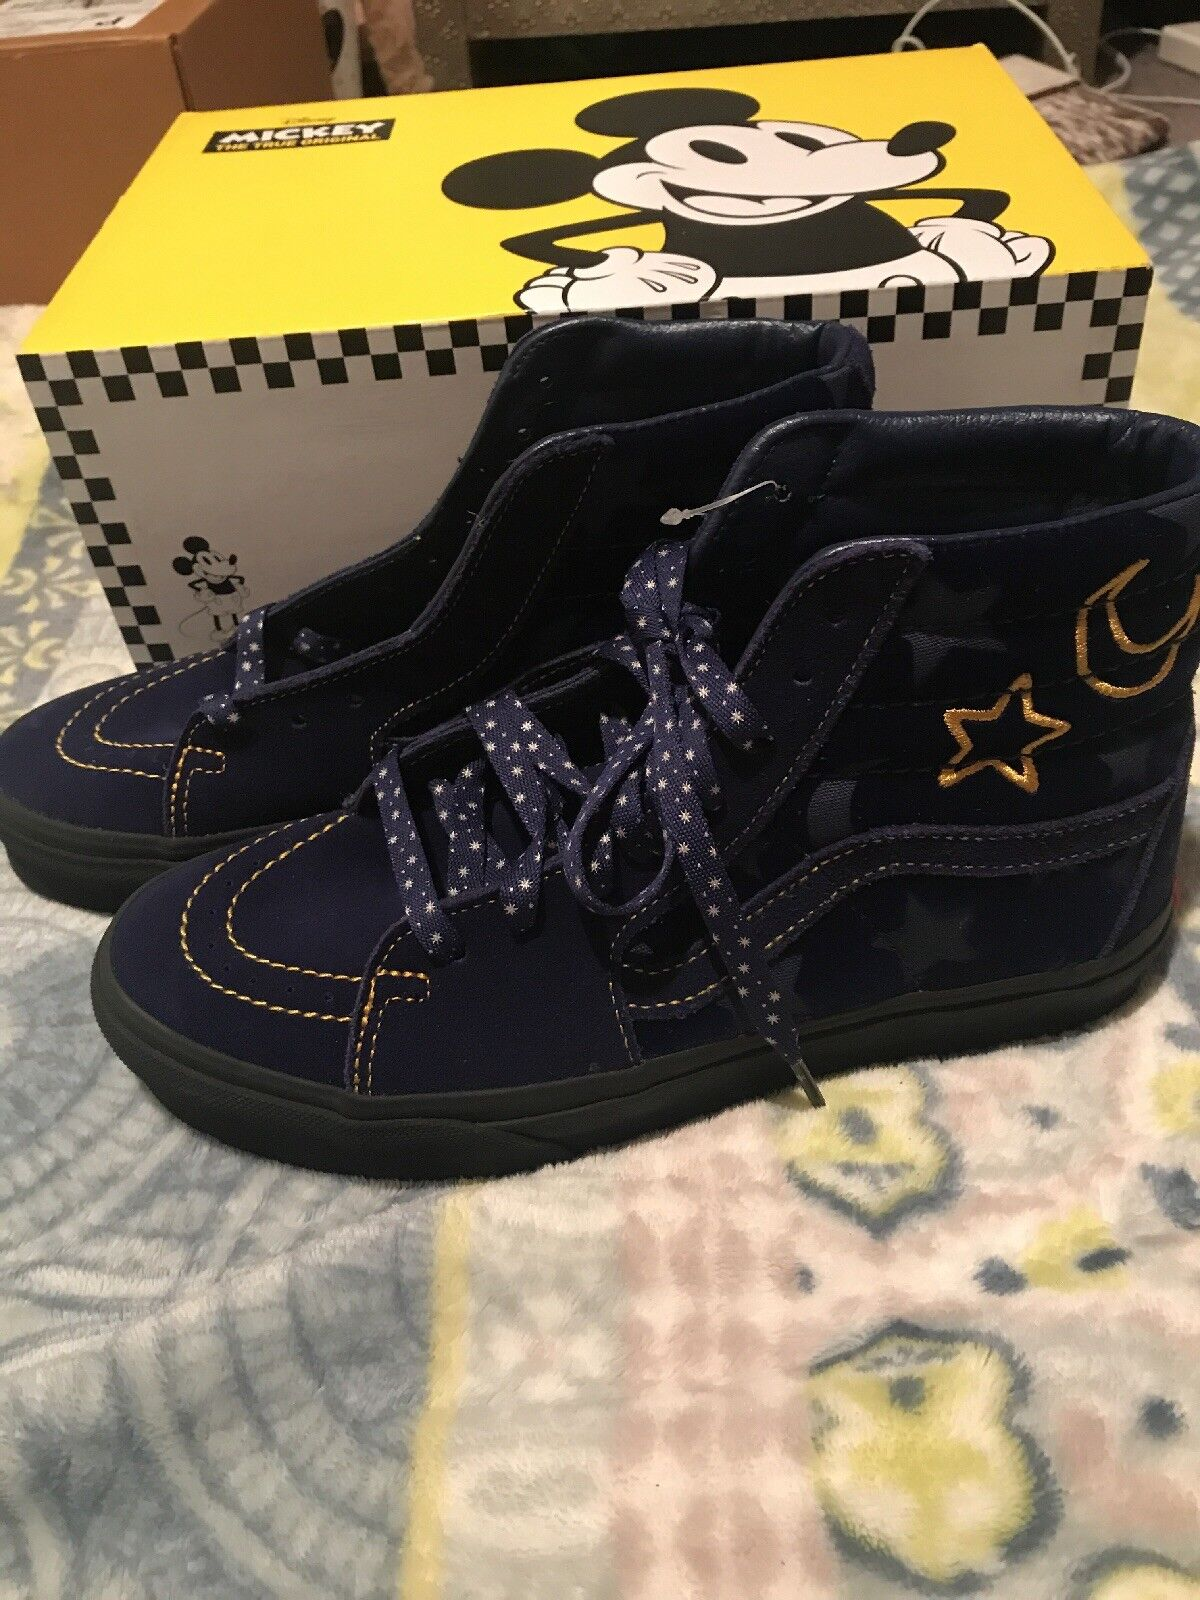 82960e355a Disney Vans Mickey Sorcerers - Hi Sneakers Men's 6 Women's 7.5 Apprentice  SK8 ntkqmx2289-Athletic Shoes